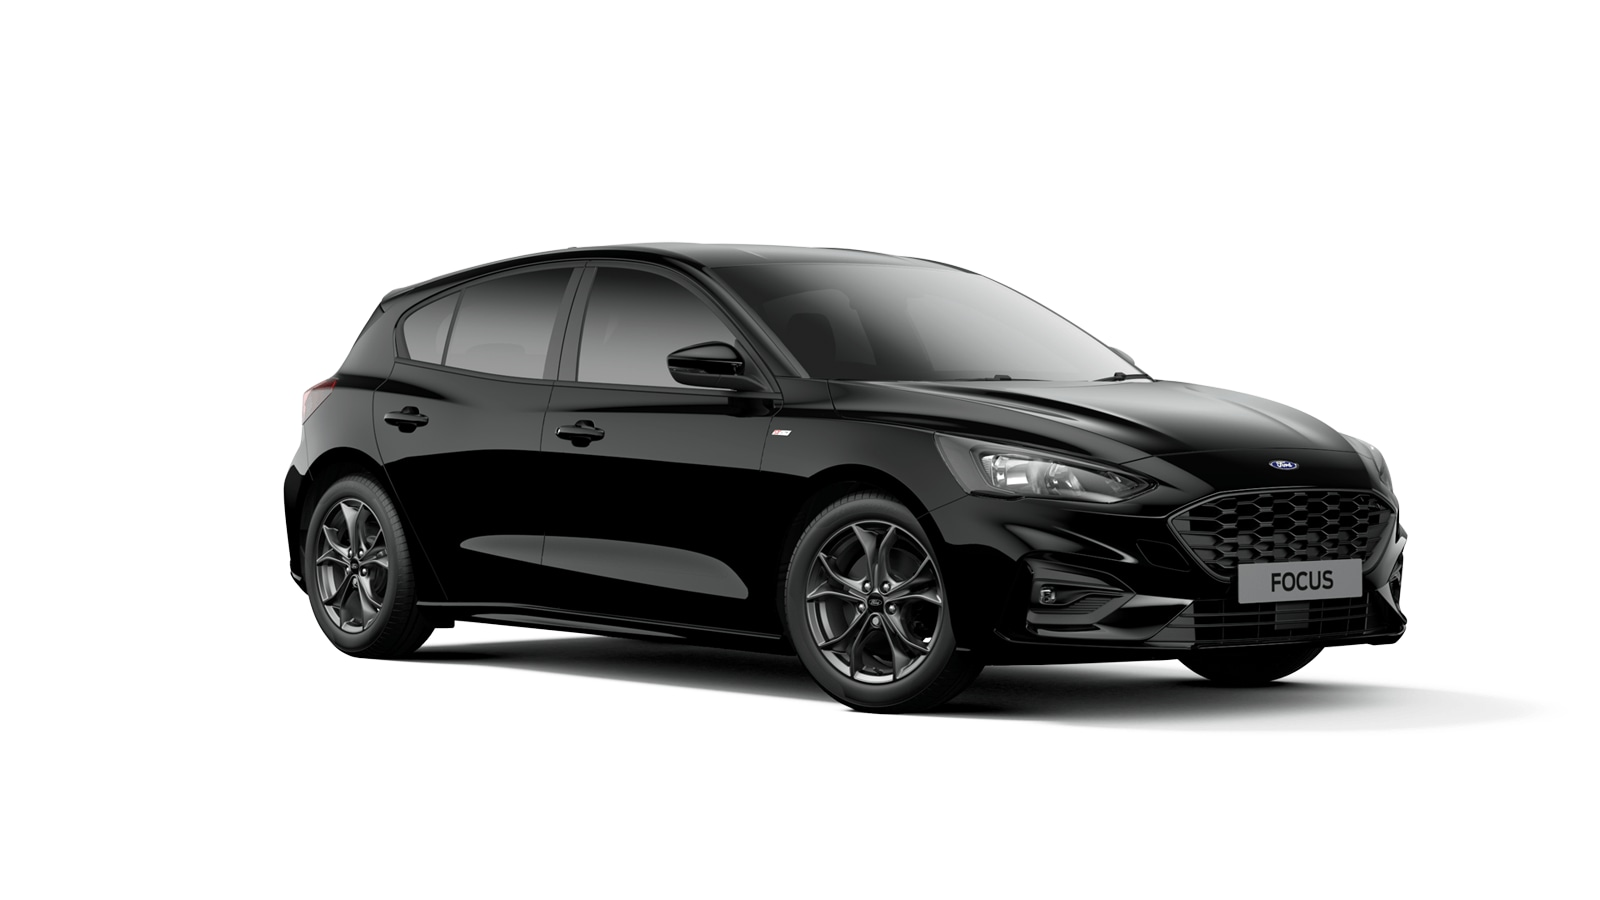 NEW FOCUS ST-Line 5 Door in Shadow Black